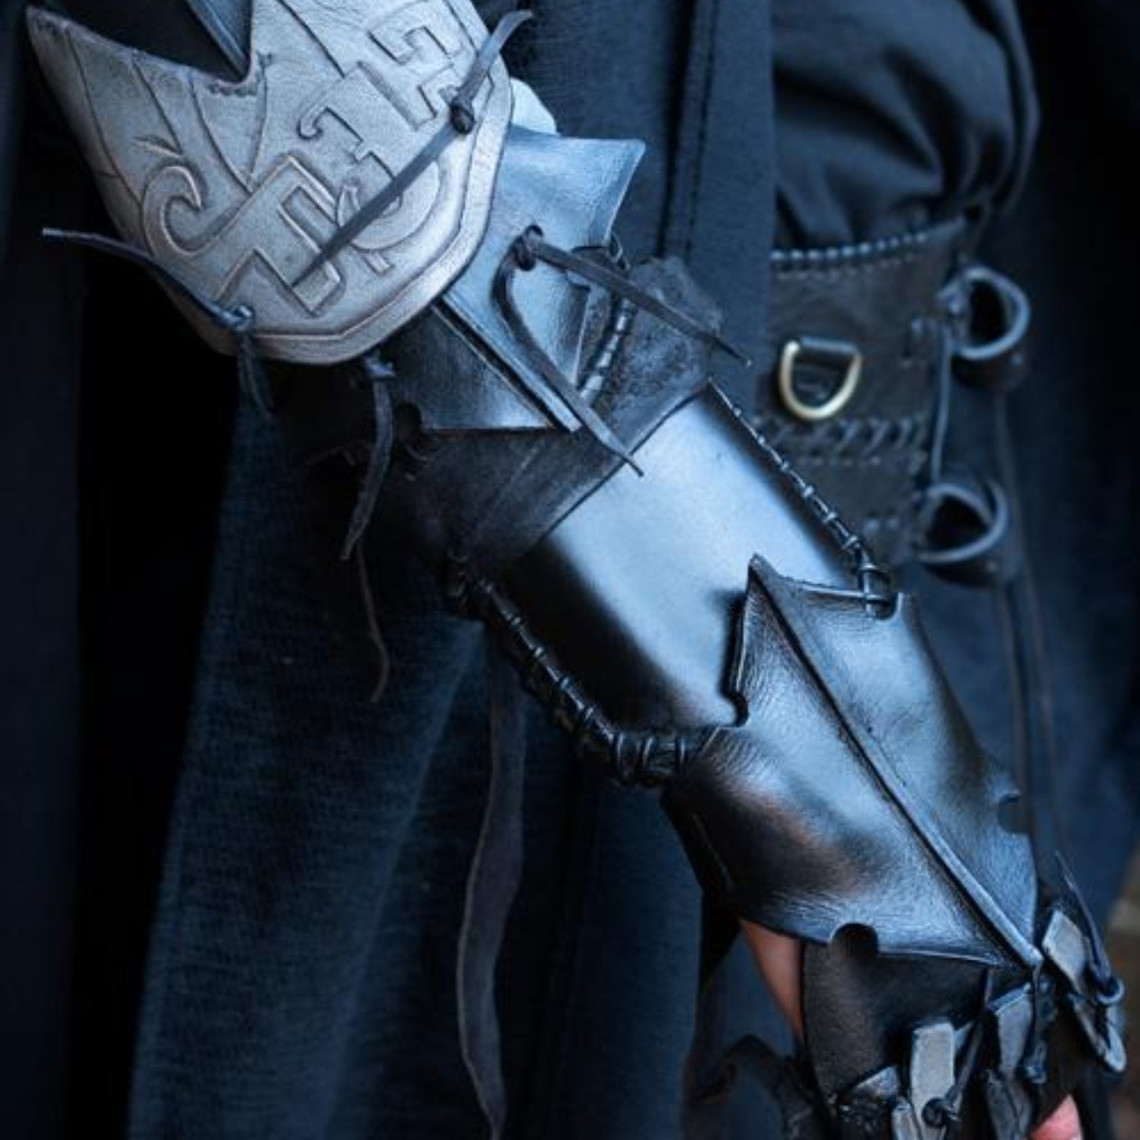 Epic Armoury Bracer Claw, right hand